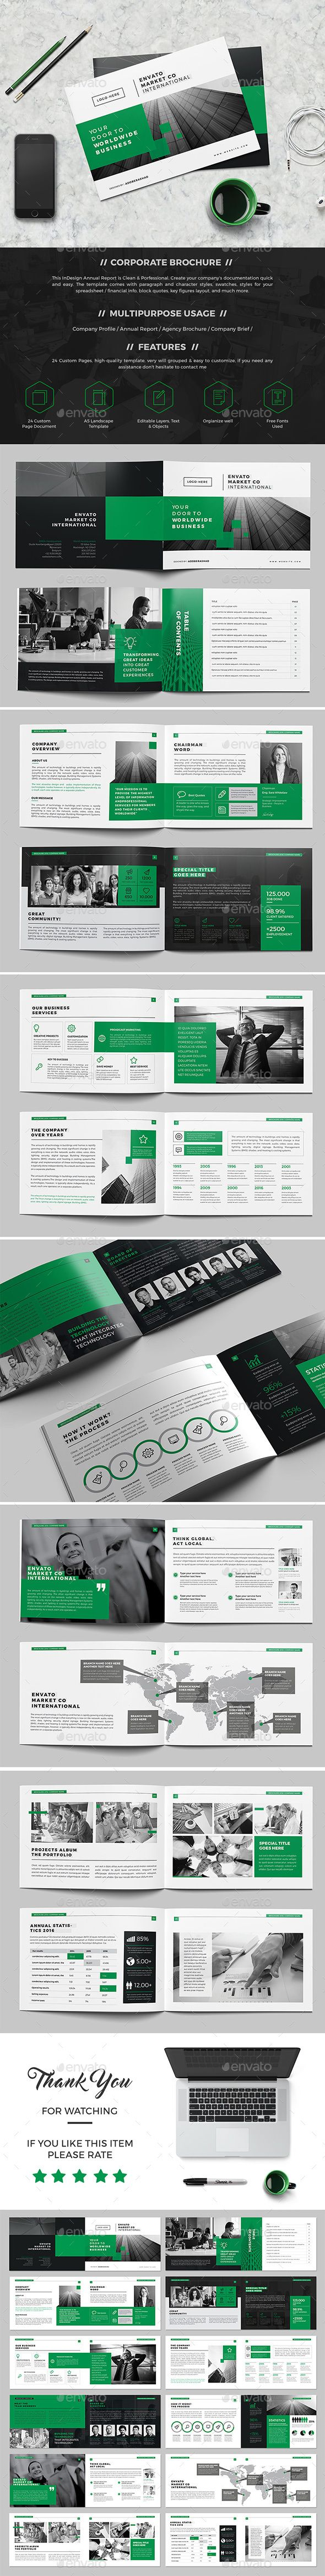 Green Landscape Brochure 24 Pages #corporate #creative #design • Click here to download ! http://graphicriver.net/item/green-landscape-brochure-24-pages/15913424?ref=pxcr